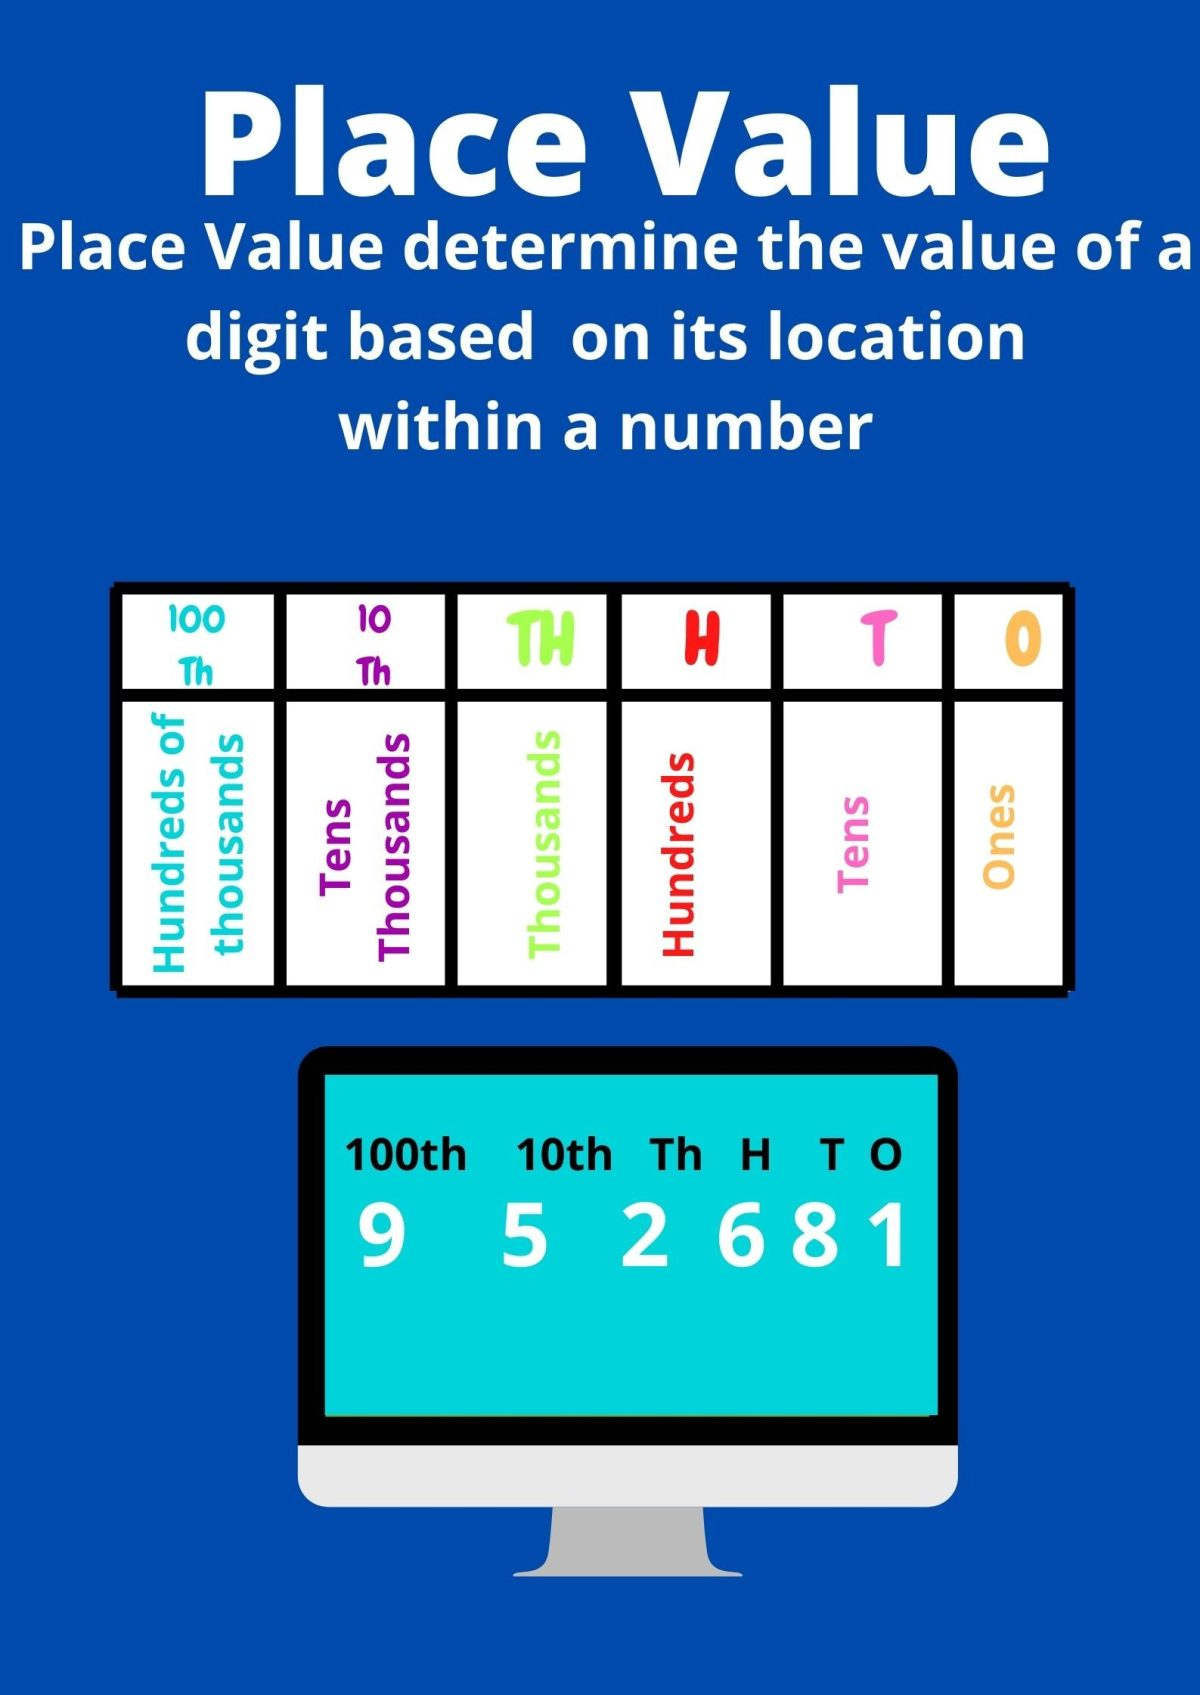 Place Value Class Poster 2 edited